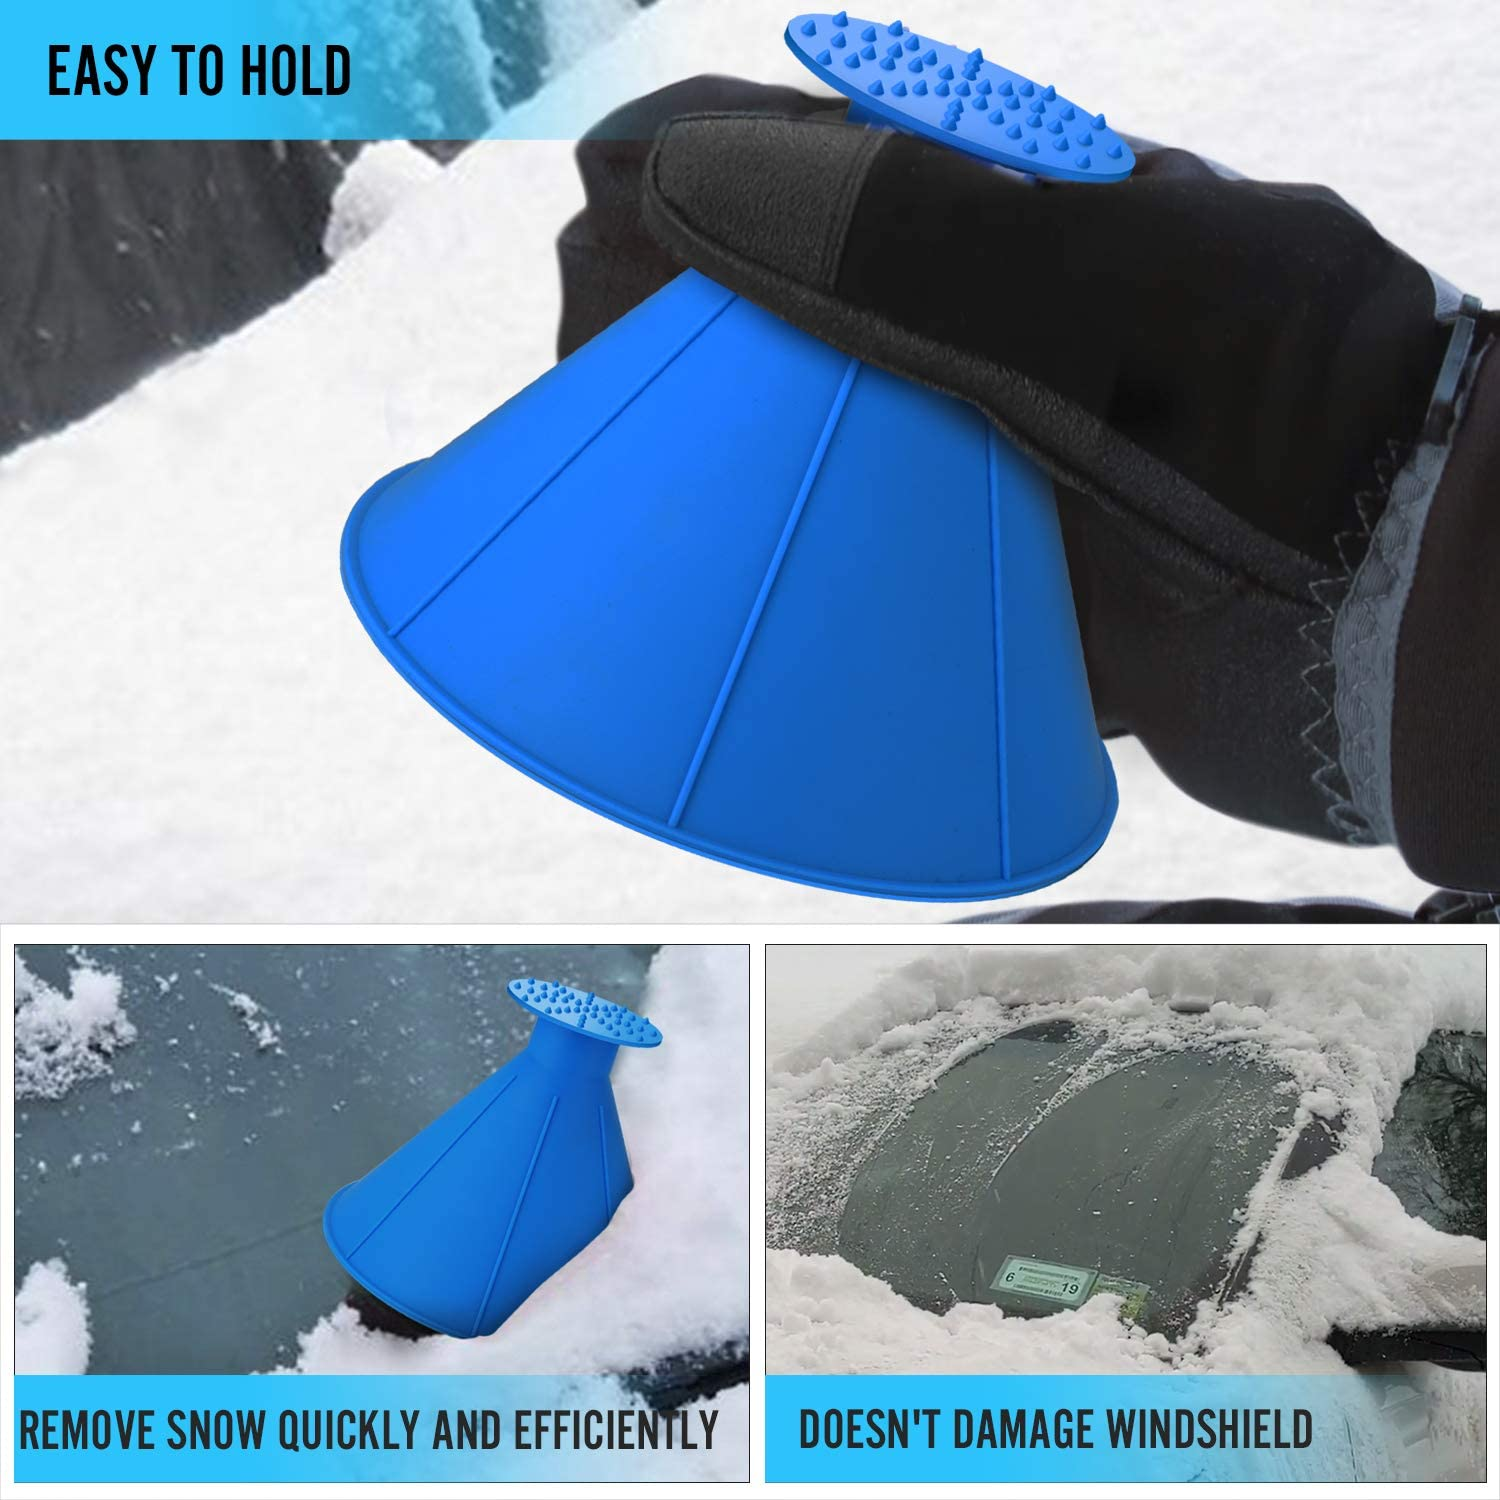 SEVENS 2 Pack Ice Scraper Round Car Window Windshield Cone Shaped 6.8/″Larger Coverage Diameter Snow Ice Scraper Funnel Removal Tool with 6 Ice Breakers Black